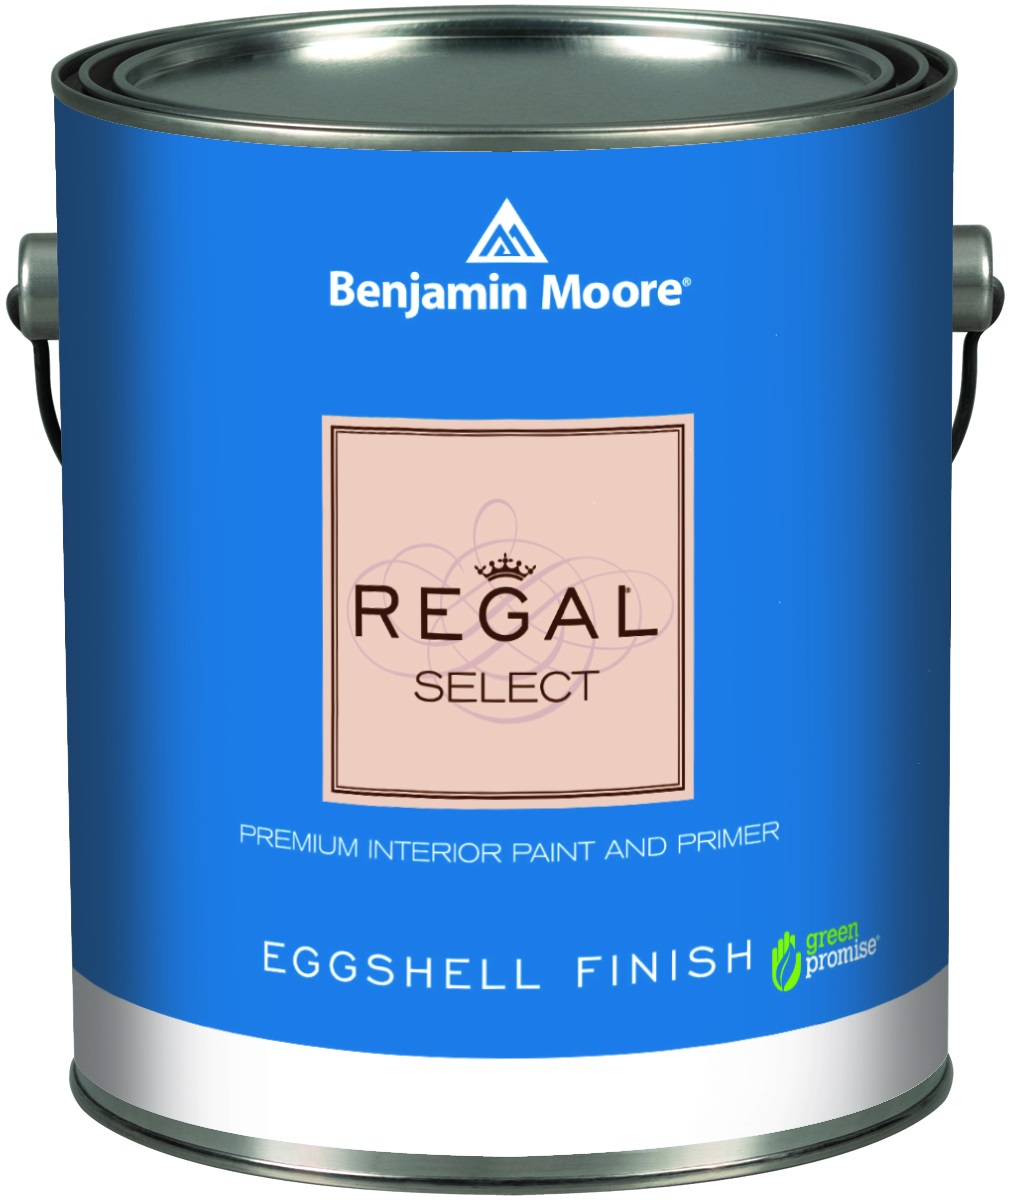 REGAL®SELECT WATERBORNE INTERIOR PAINT - REGAL Select offers the premium performance and smooth application you've come to expect from our classic paint, with the added benefits of cutting-edge new technologies. Thanks to our proprietary waterborne resins and zero VOC colourants, REGAL Select is both a paint and primer in one advanced formula.